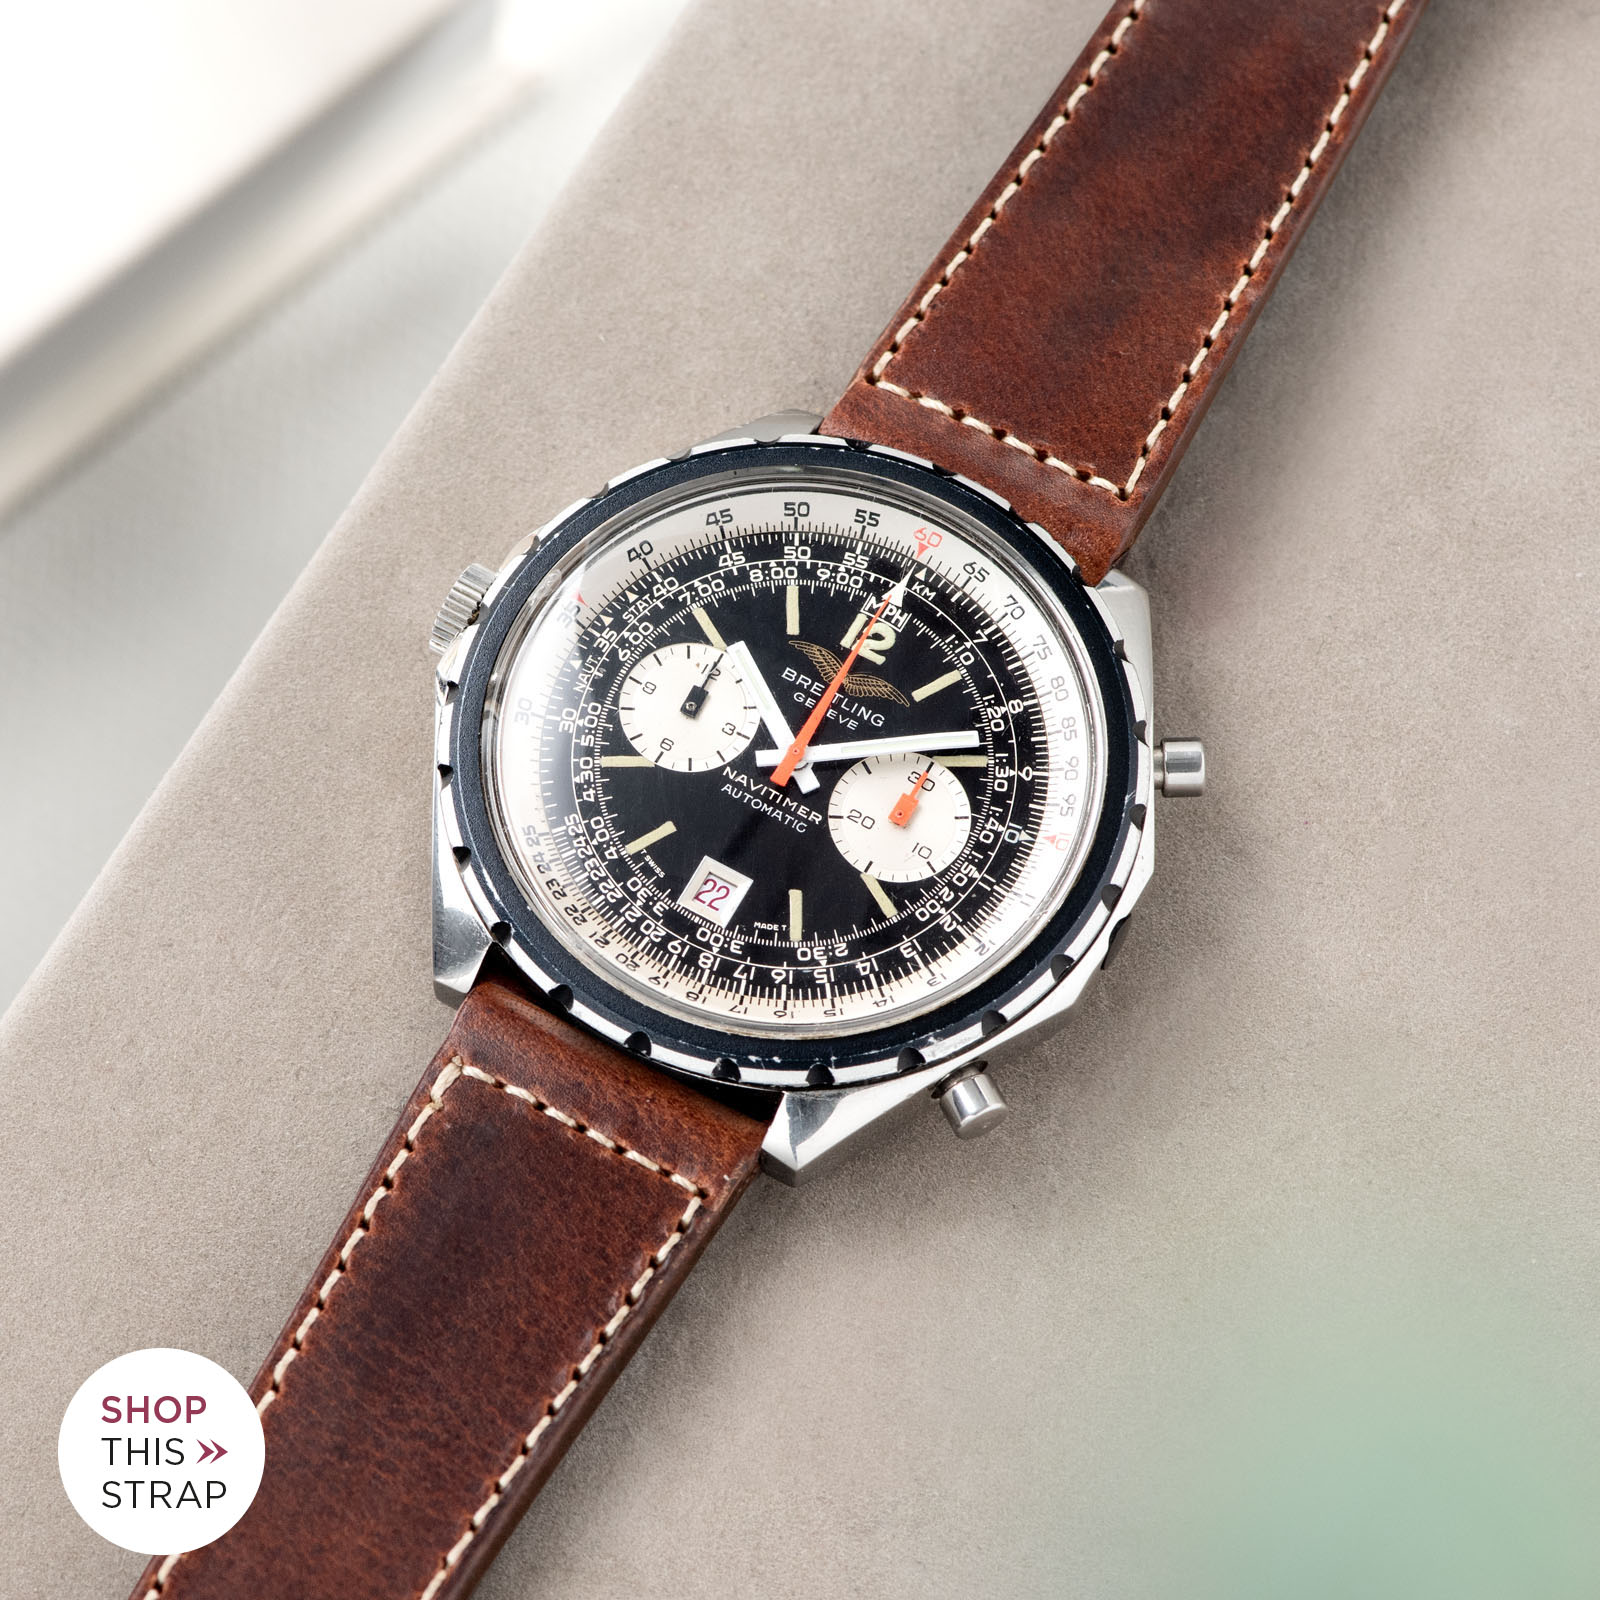 Bulang and Sons_Strapguide_Breitling Navitimer ref issued to iraqi air force ref 1806_Siena Brown Boxed Leather Watch Strap _005